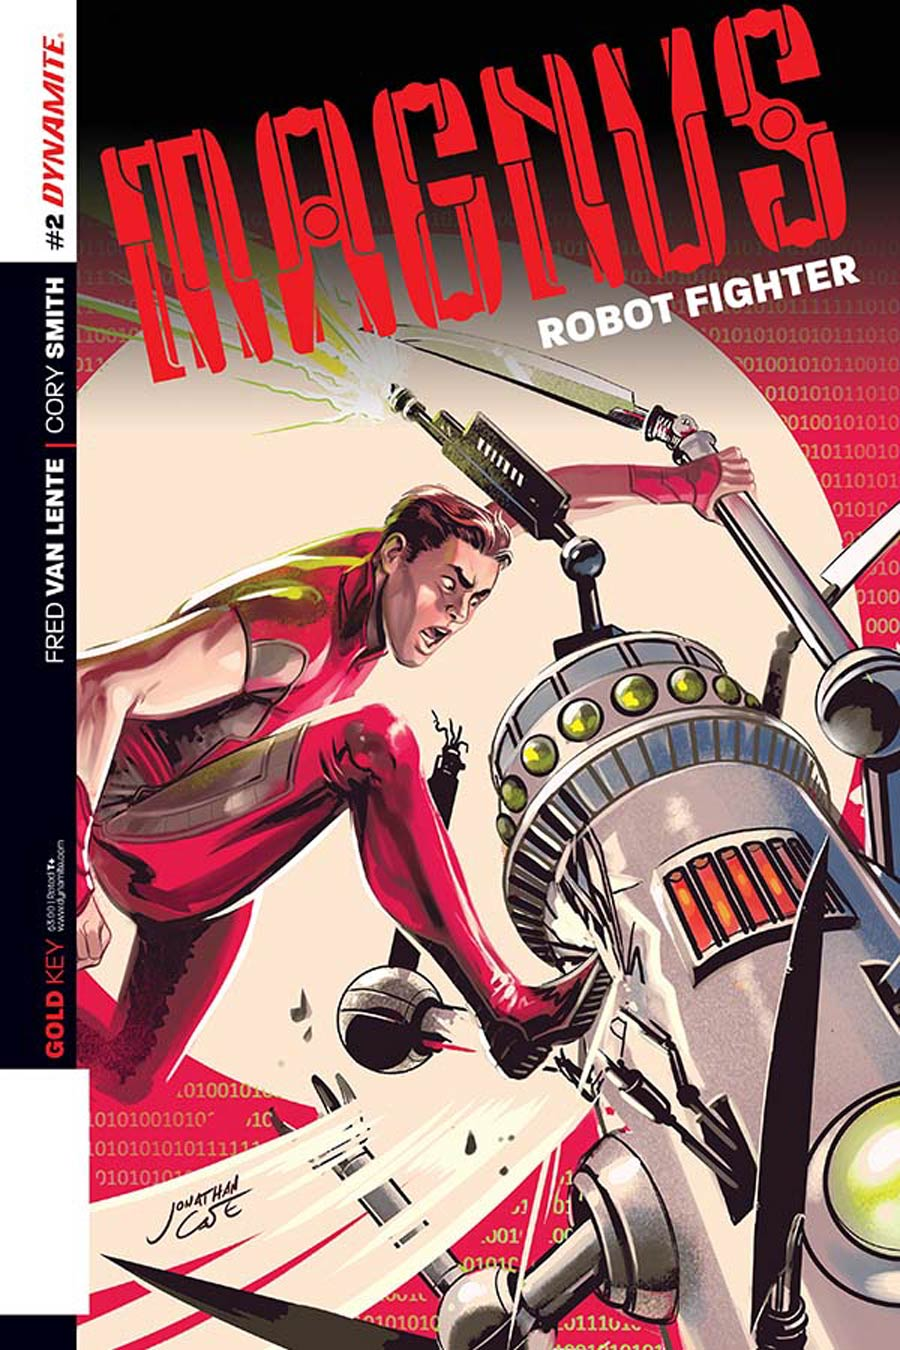 Magnus Robot Fighter Vol 4 #2 Cover B Variant Jonathan Case Exclusive Subscription Cover